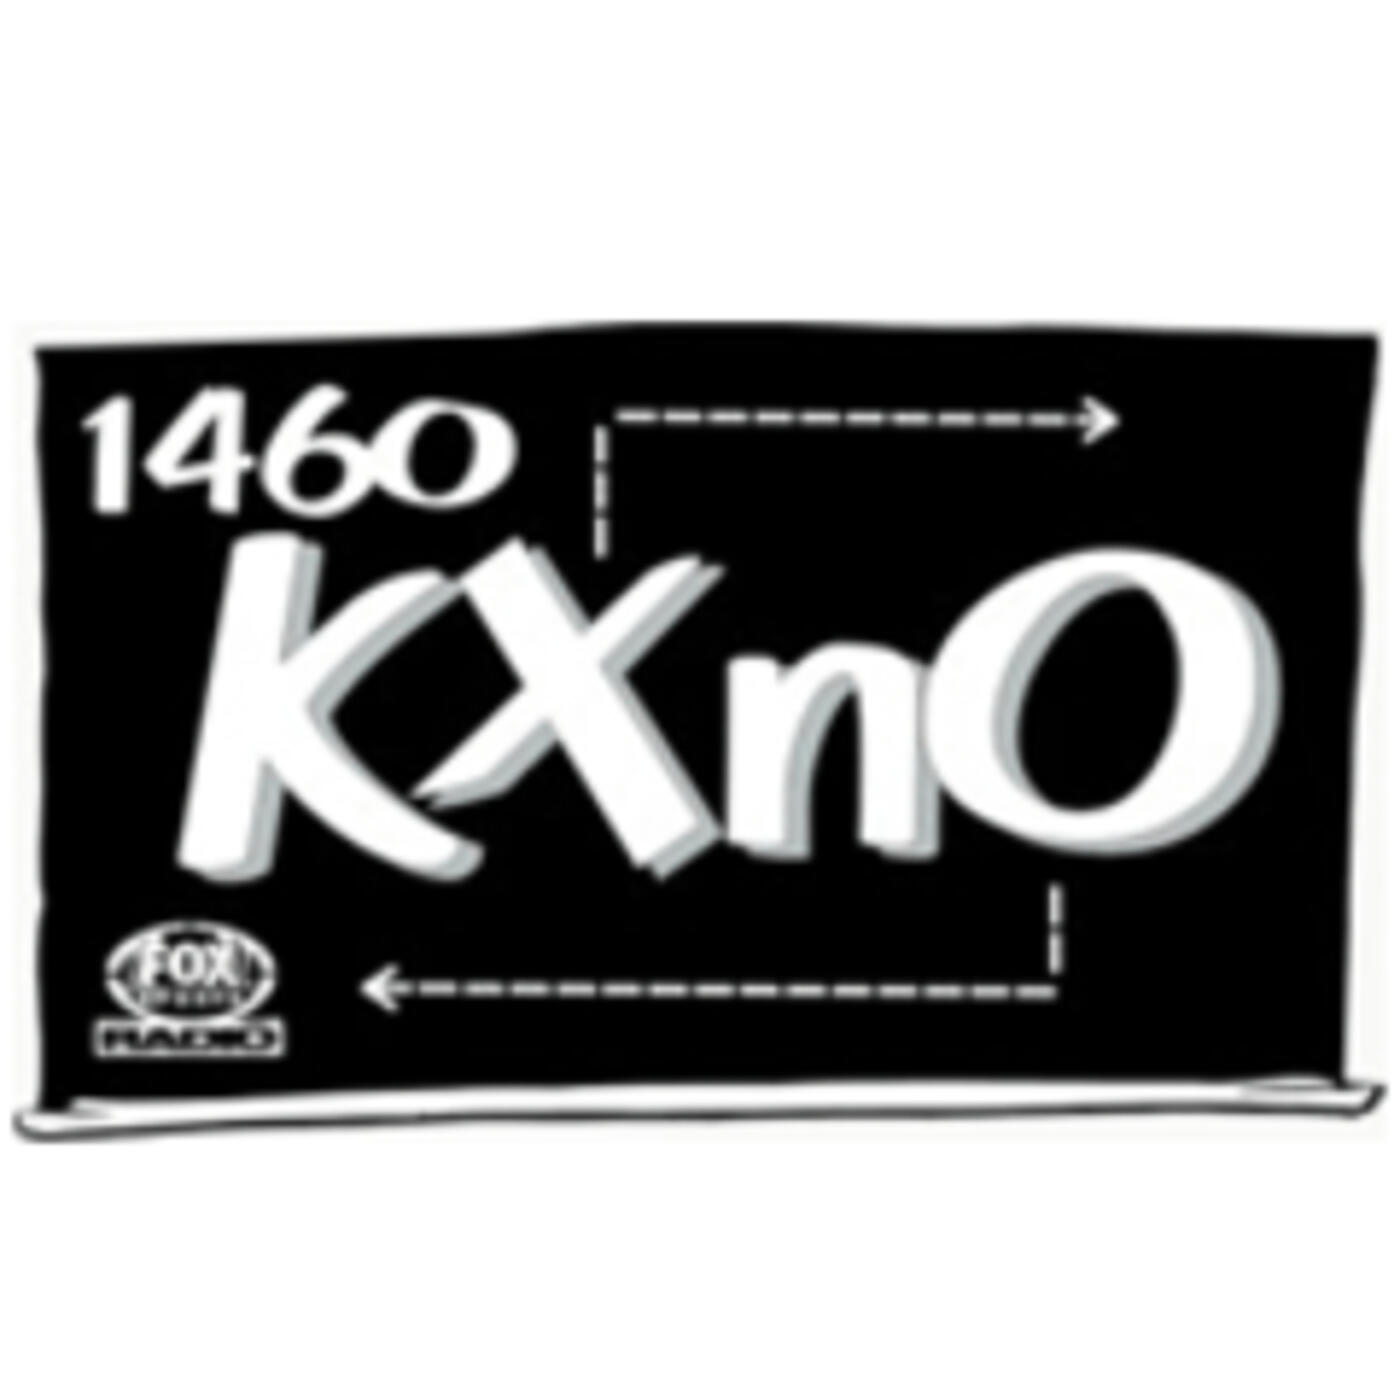 Listen to the Miller and Condon on KXnO Episode - Cubs/Cards, Wrestling in the booth, Packers with Dave Sinykin, Hawkeyes with Tom Kakert, Cyclones with Dylan Montz on iHeartRadio   iHeartRadio